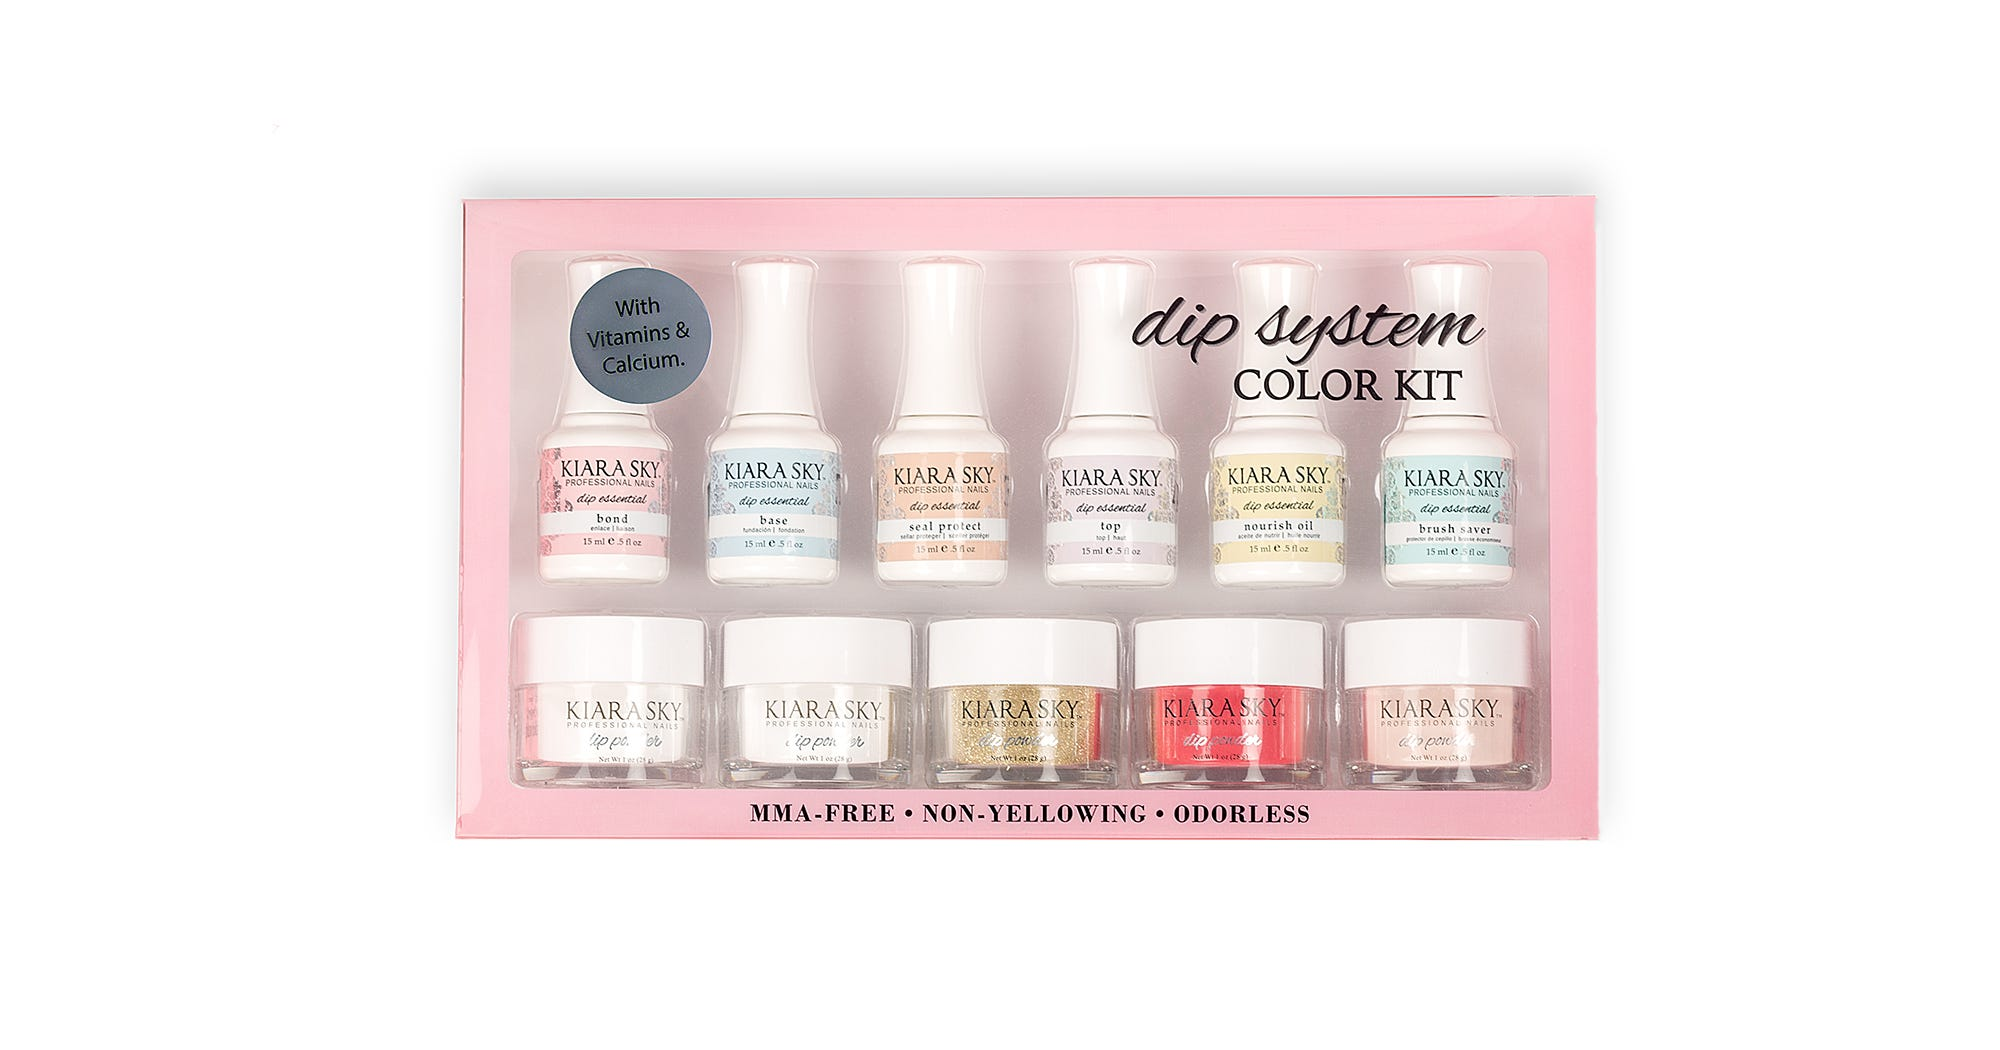 Best Dip Powder Nail Kit Systems For At Home Manicures